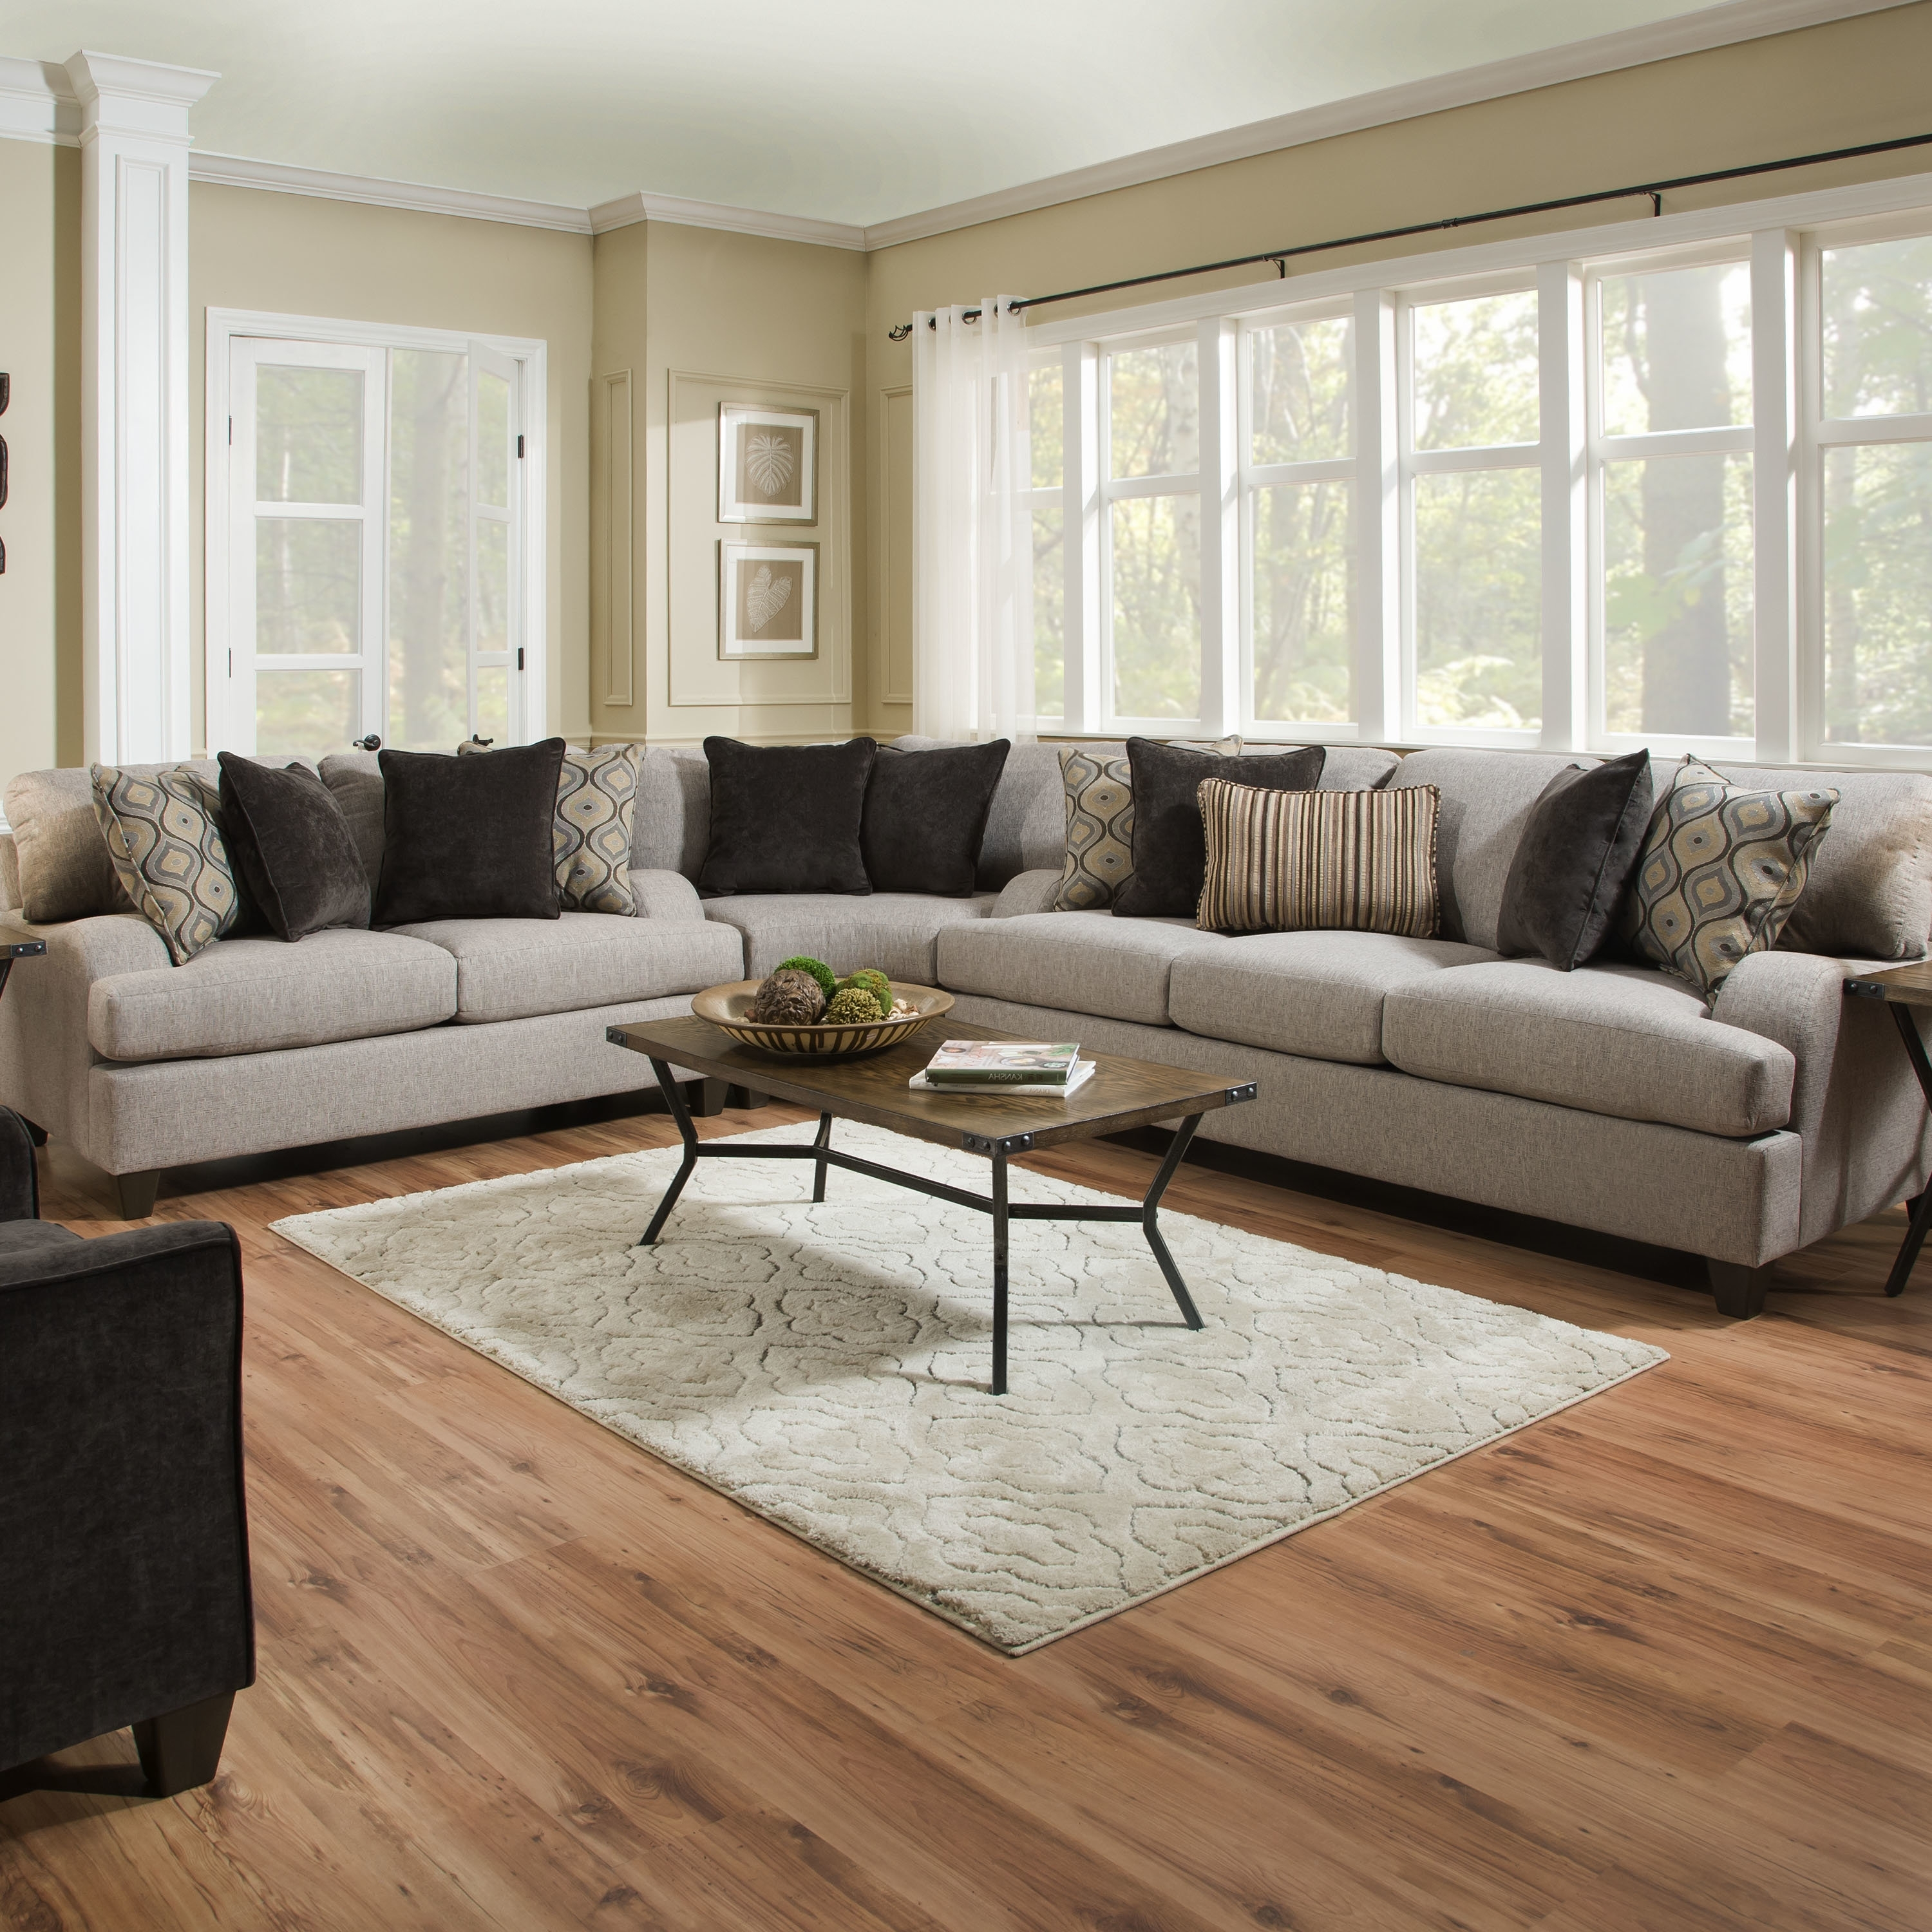 Wayfair For Large Sectional Sofas (View 12 of 15)